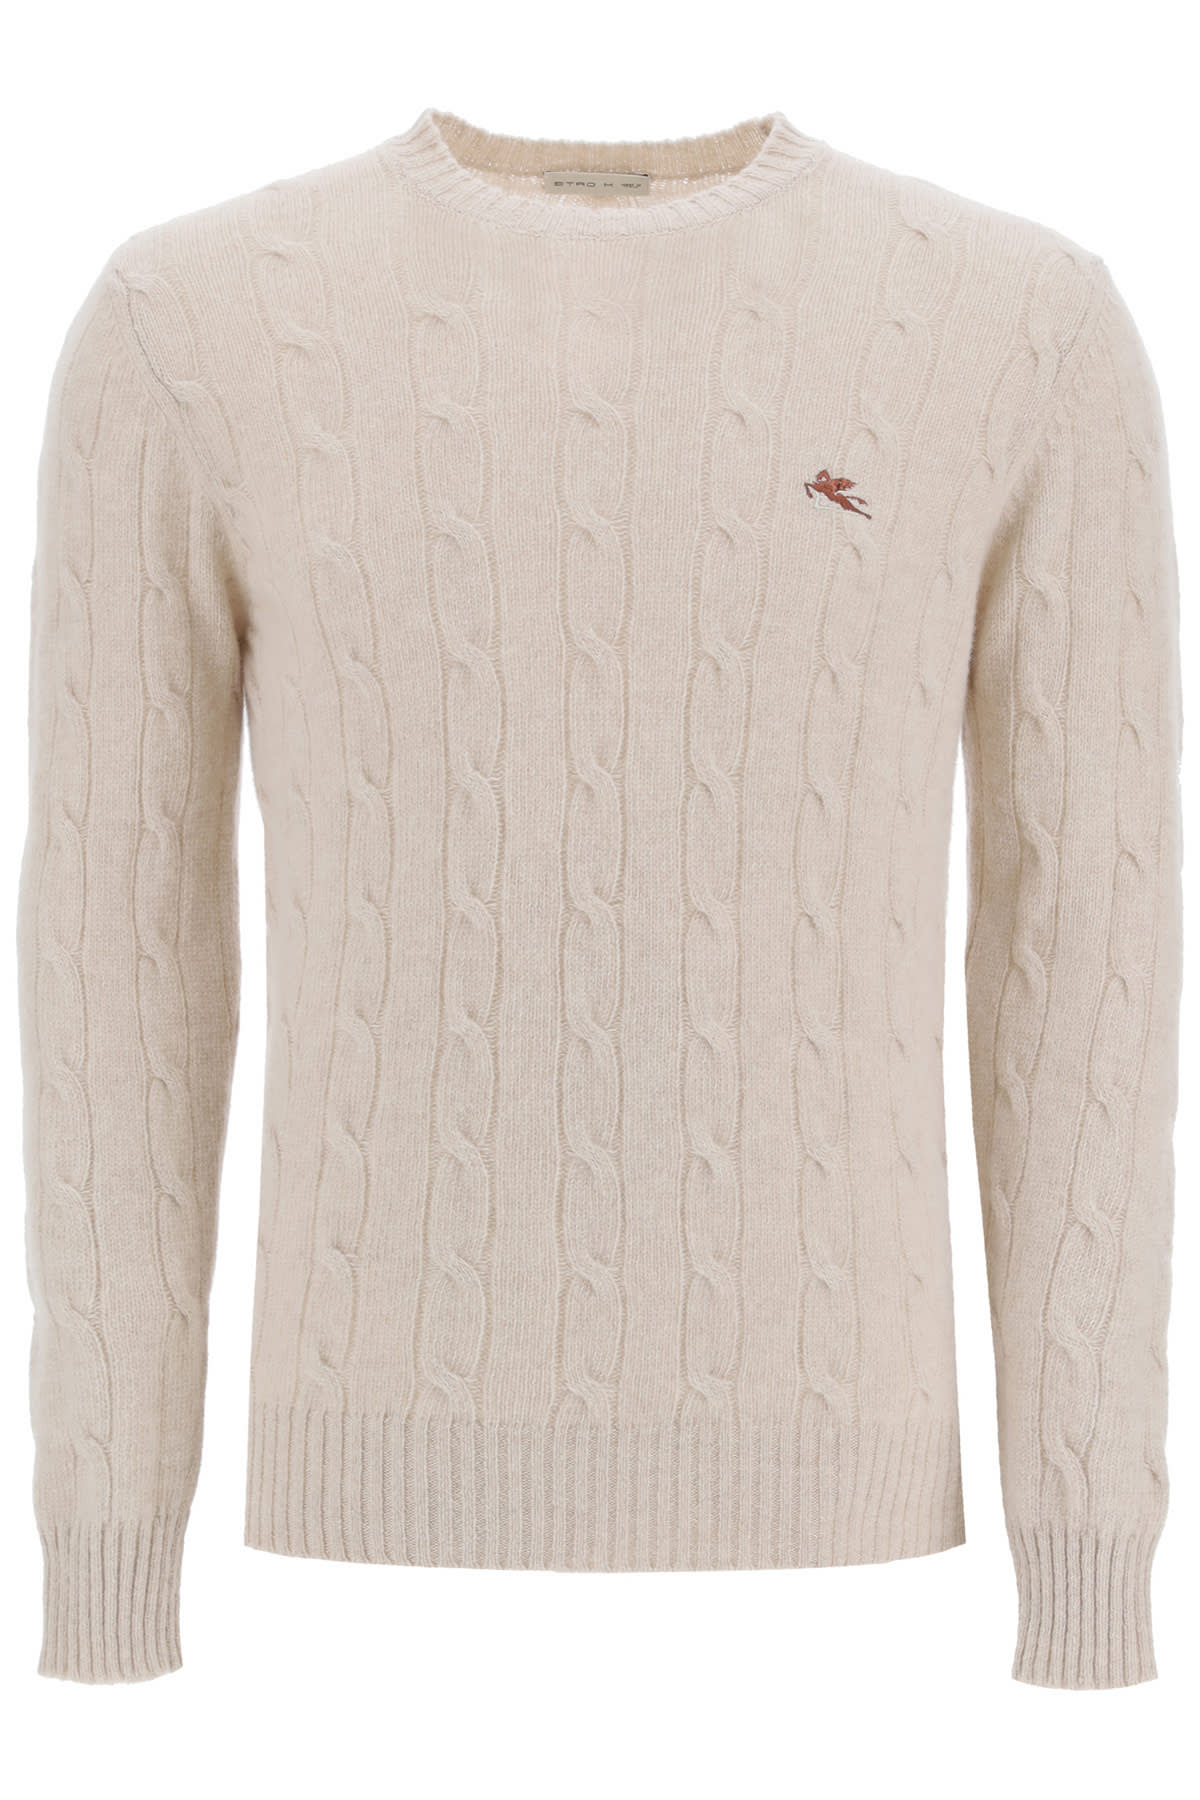 Etro CABLE KNIT WOOL SWEATER